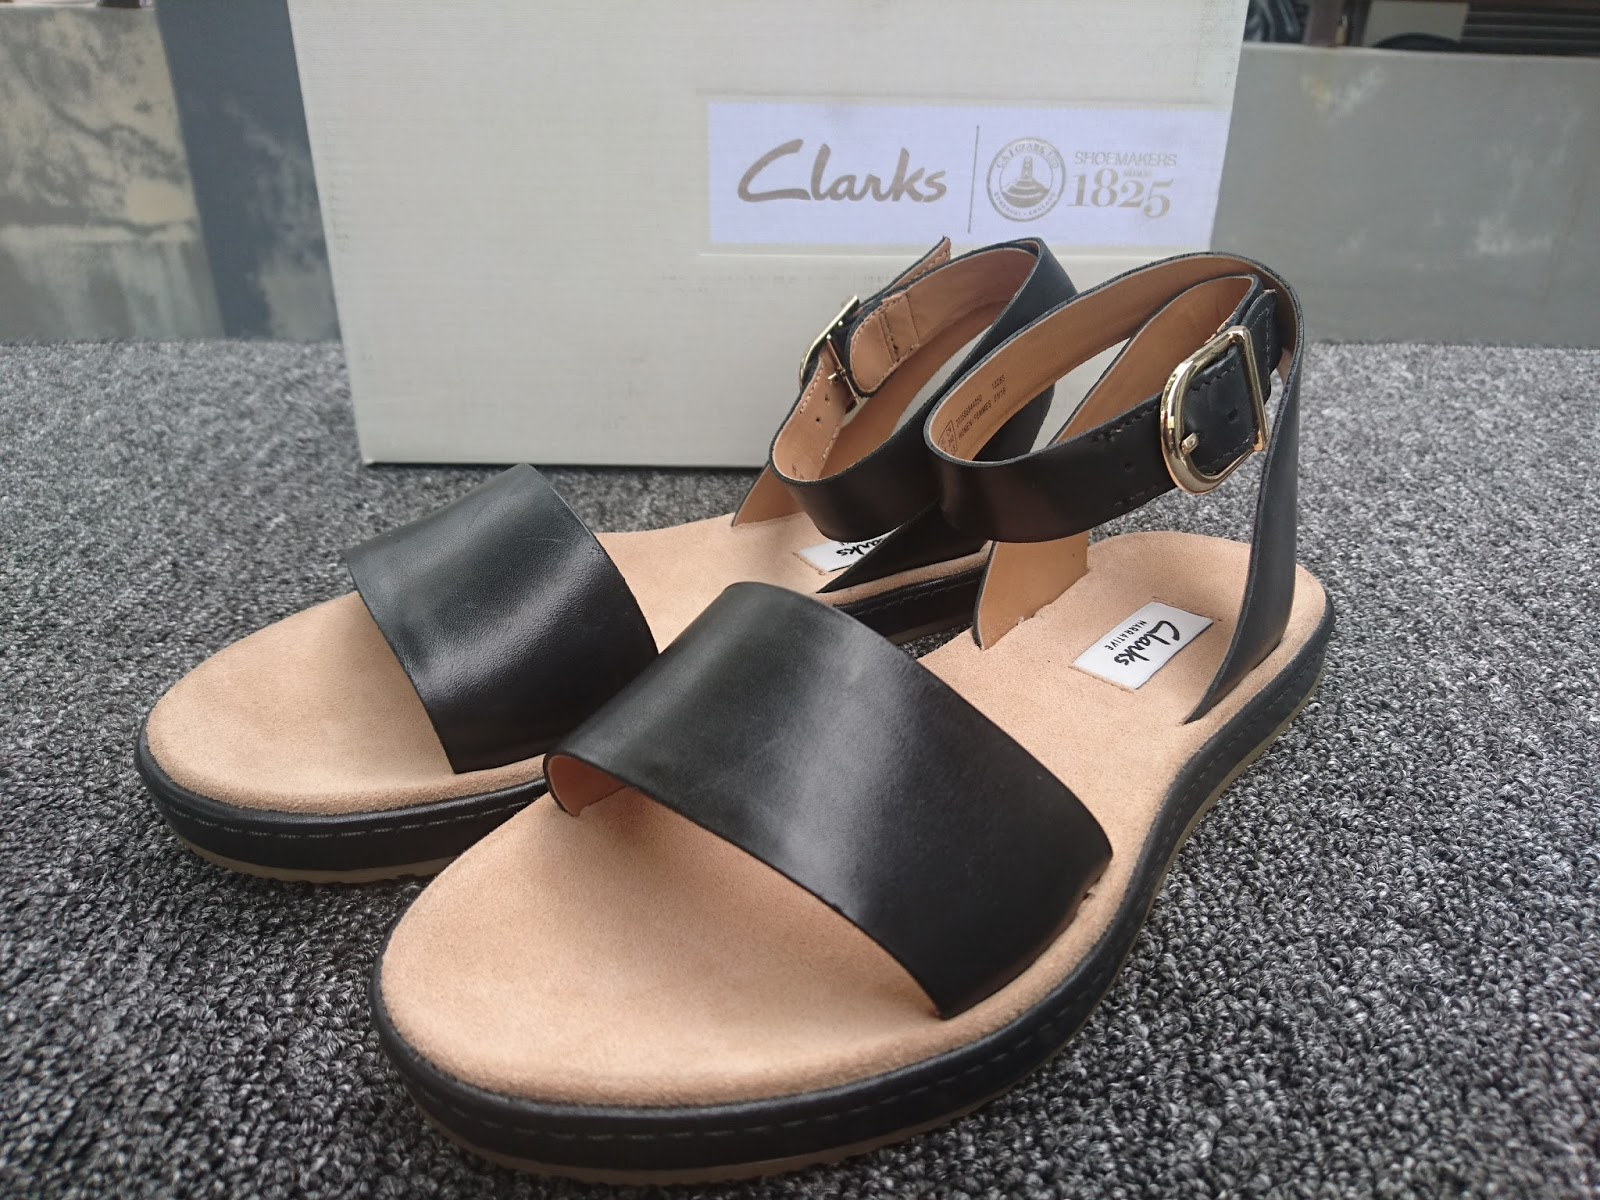 e1d5acef882 Clarks Style  Romantic Moon Collection  Narritive 100% Authentic Brand new  in box Full leather Black colour Ankle strap flat sandals Elasticated  buckle ...